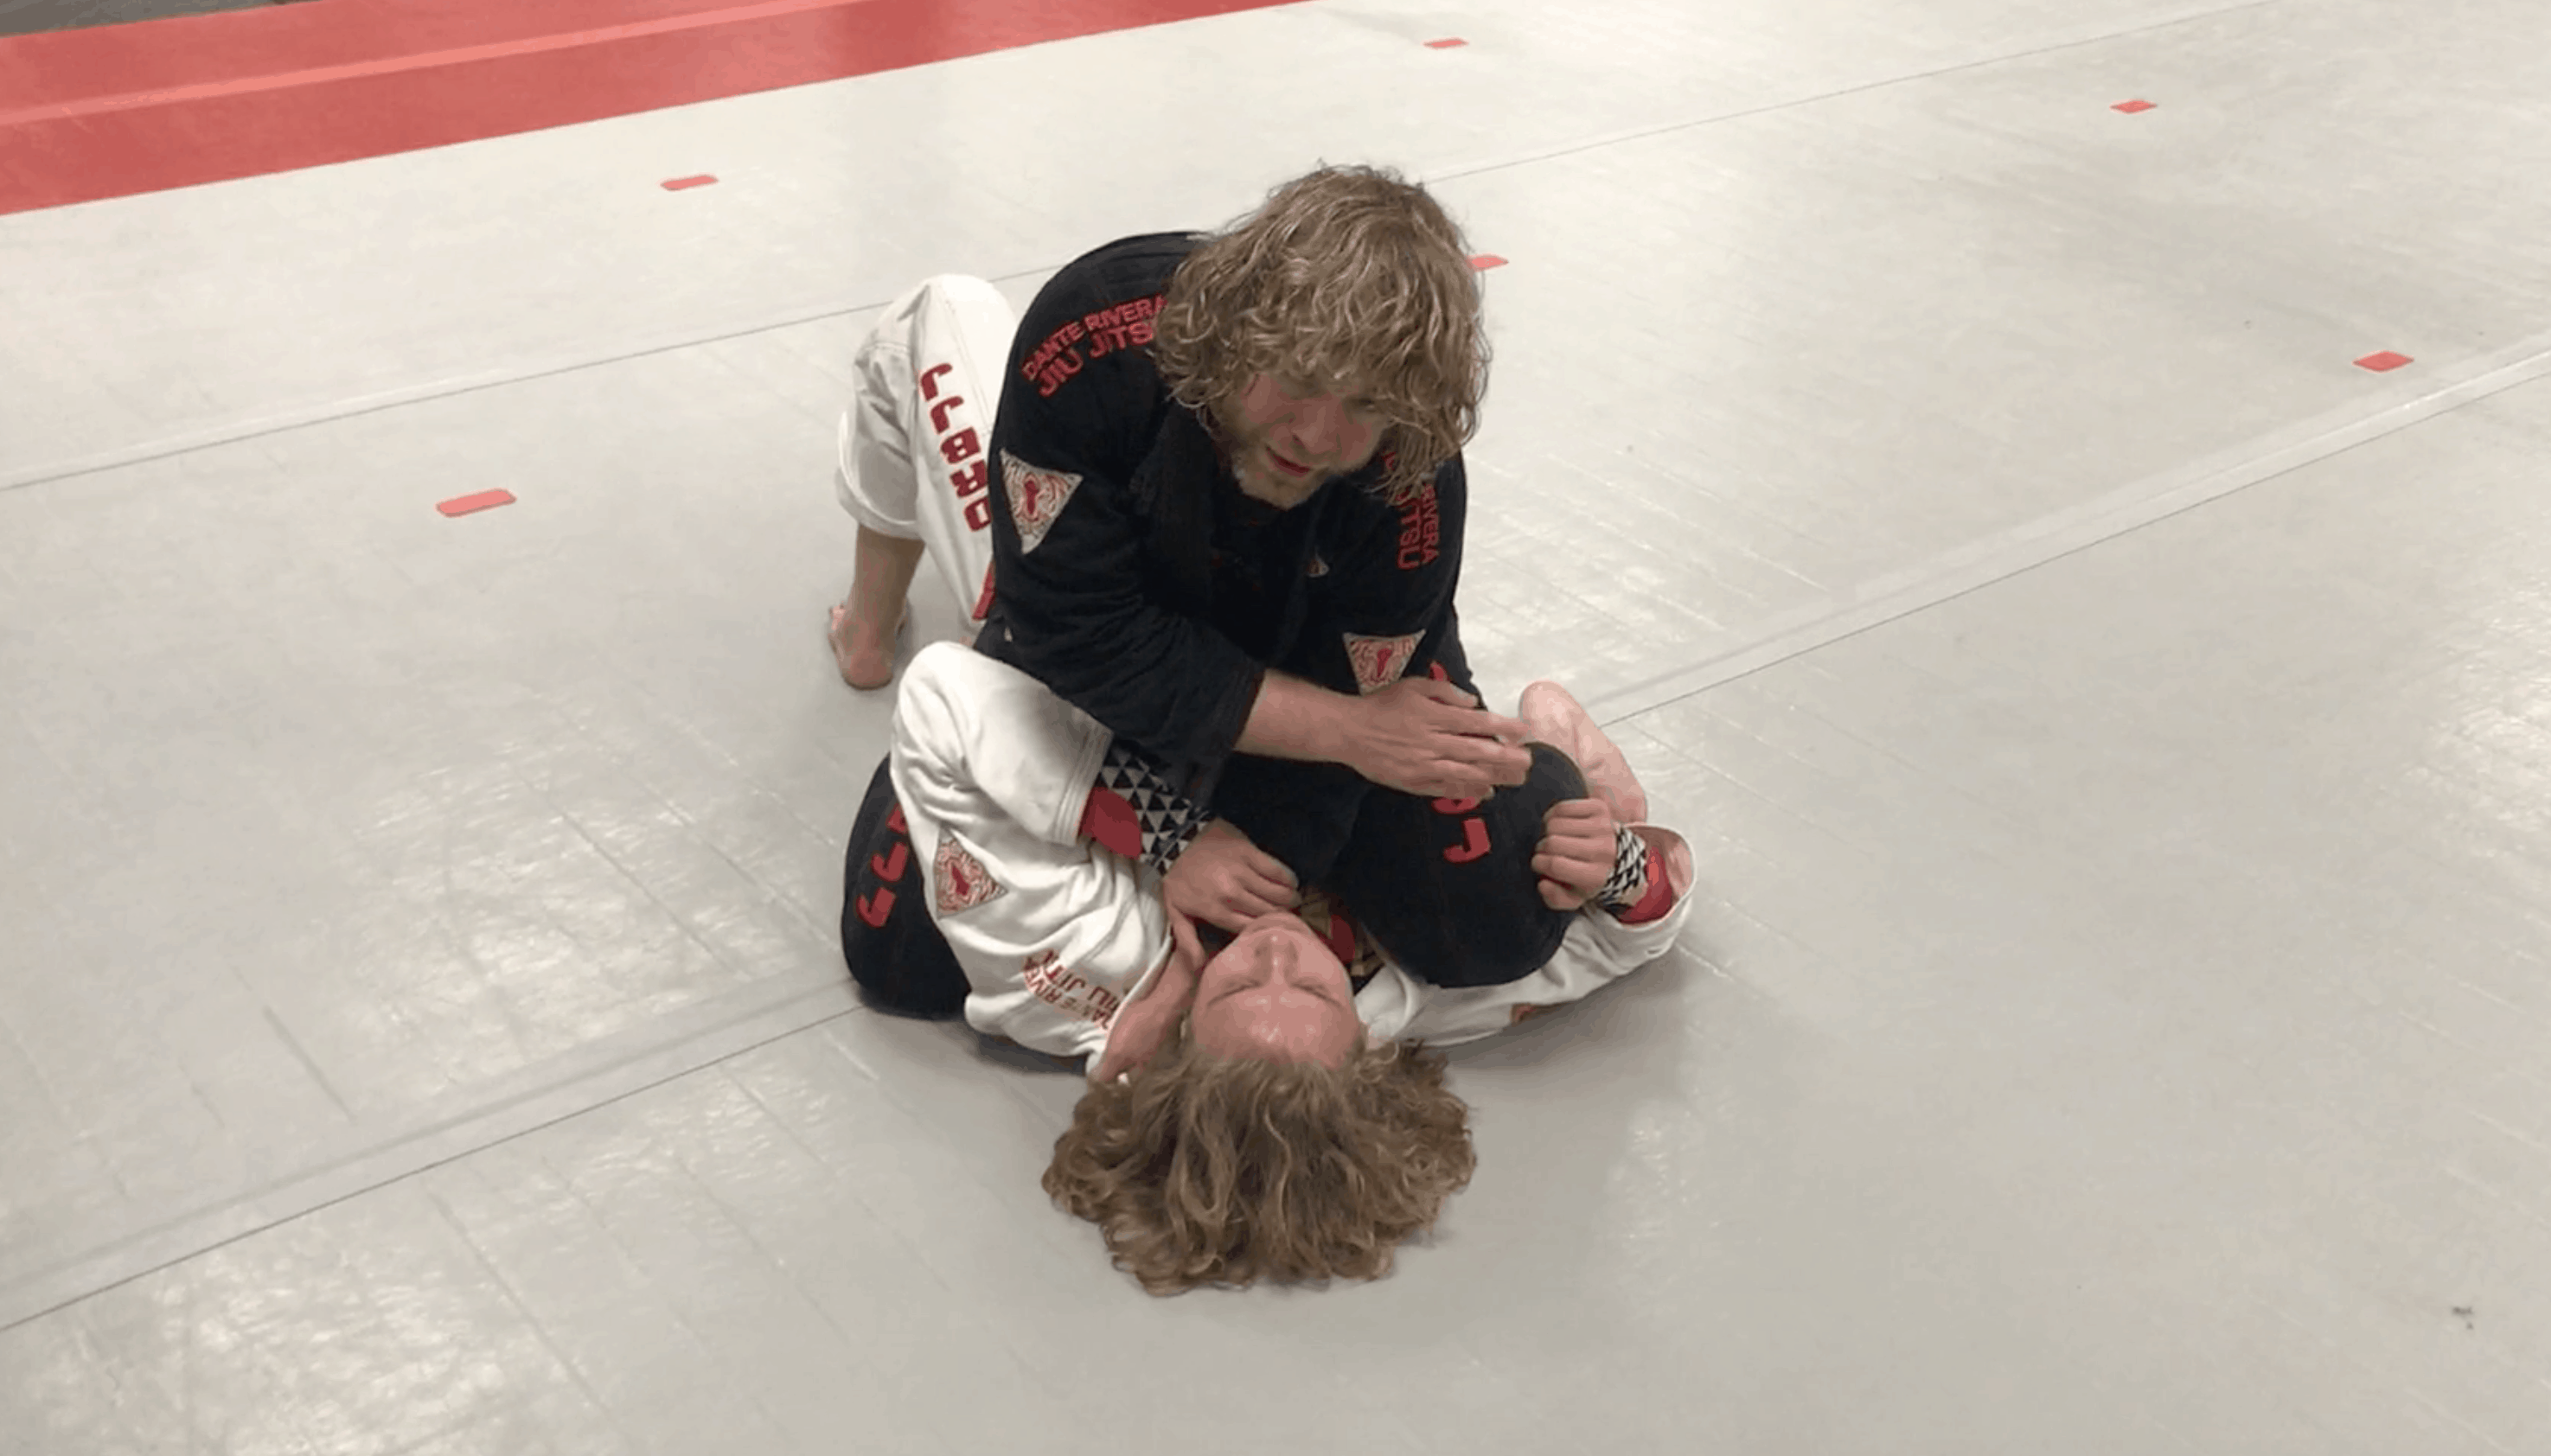 [VIDEO] Top Mount Gi Control Palm Up Grip in Collar, Arm Trap Down Cross Collar Choke